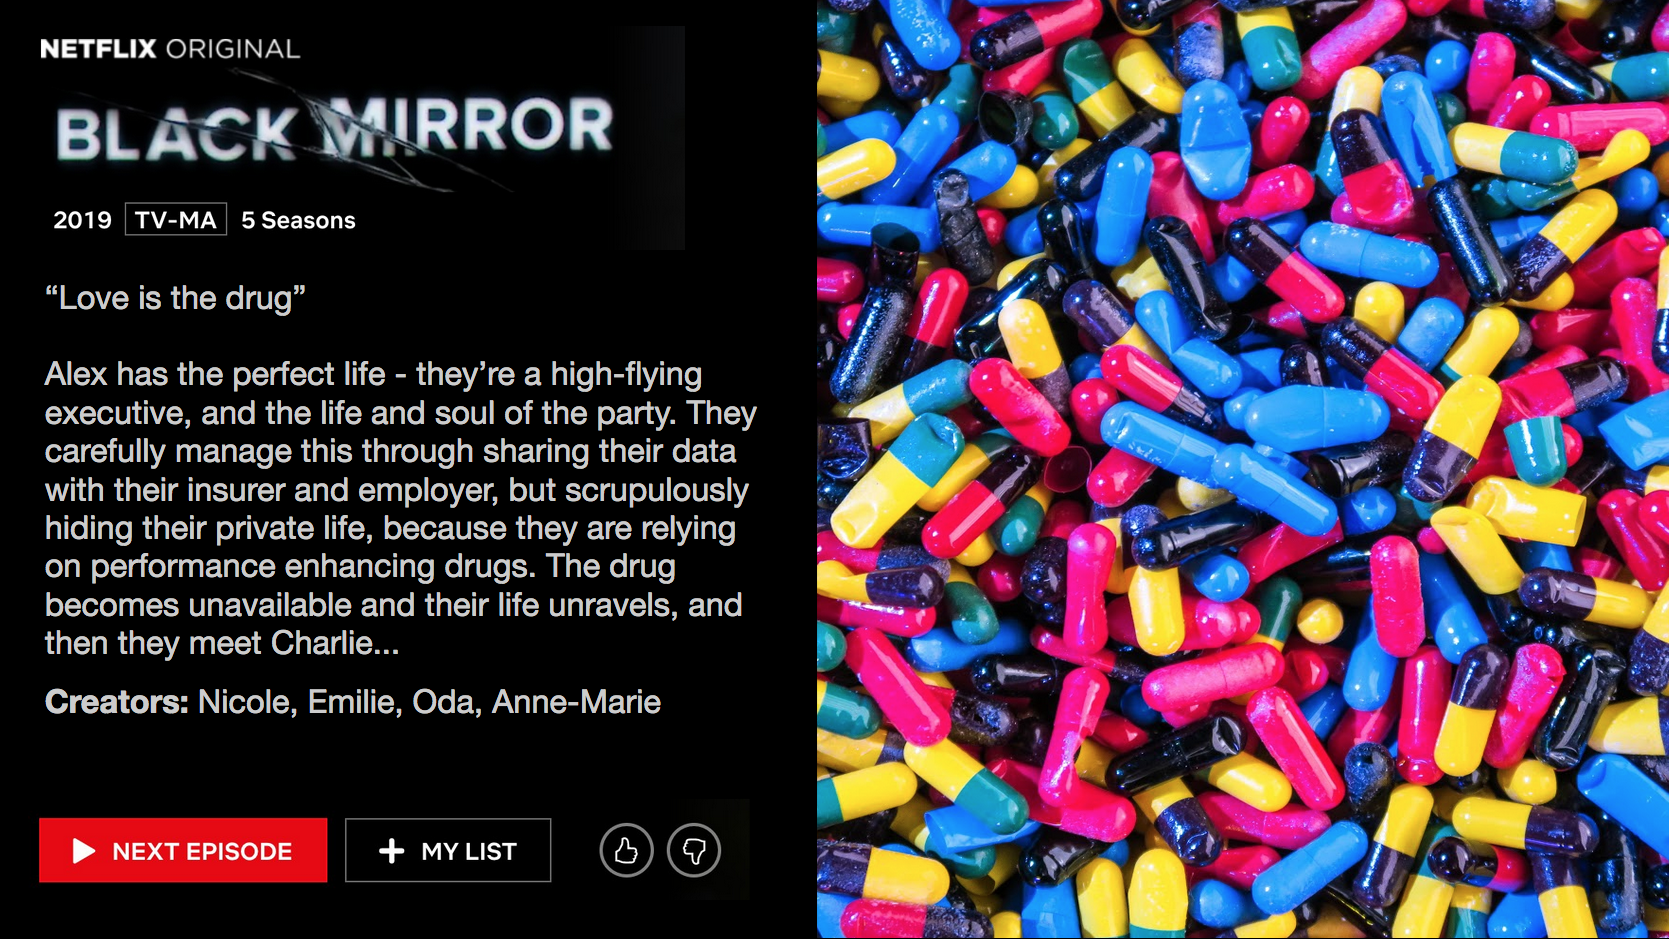 Mockup of Netflix Black Mirror Episode - description of episode plus image